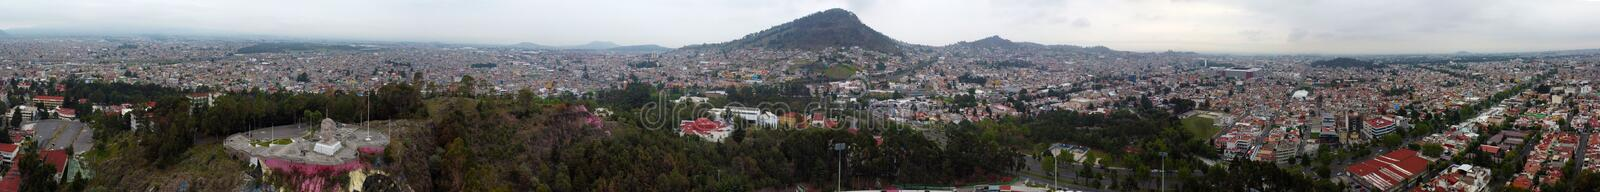 Panoramic view of Toluca mexico valley royalty free stock photography